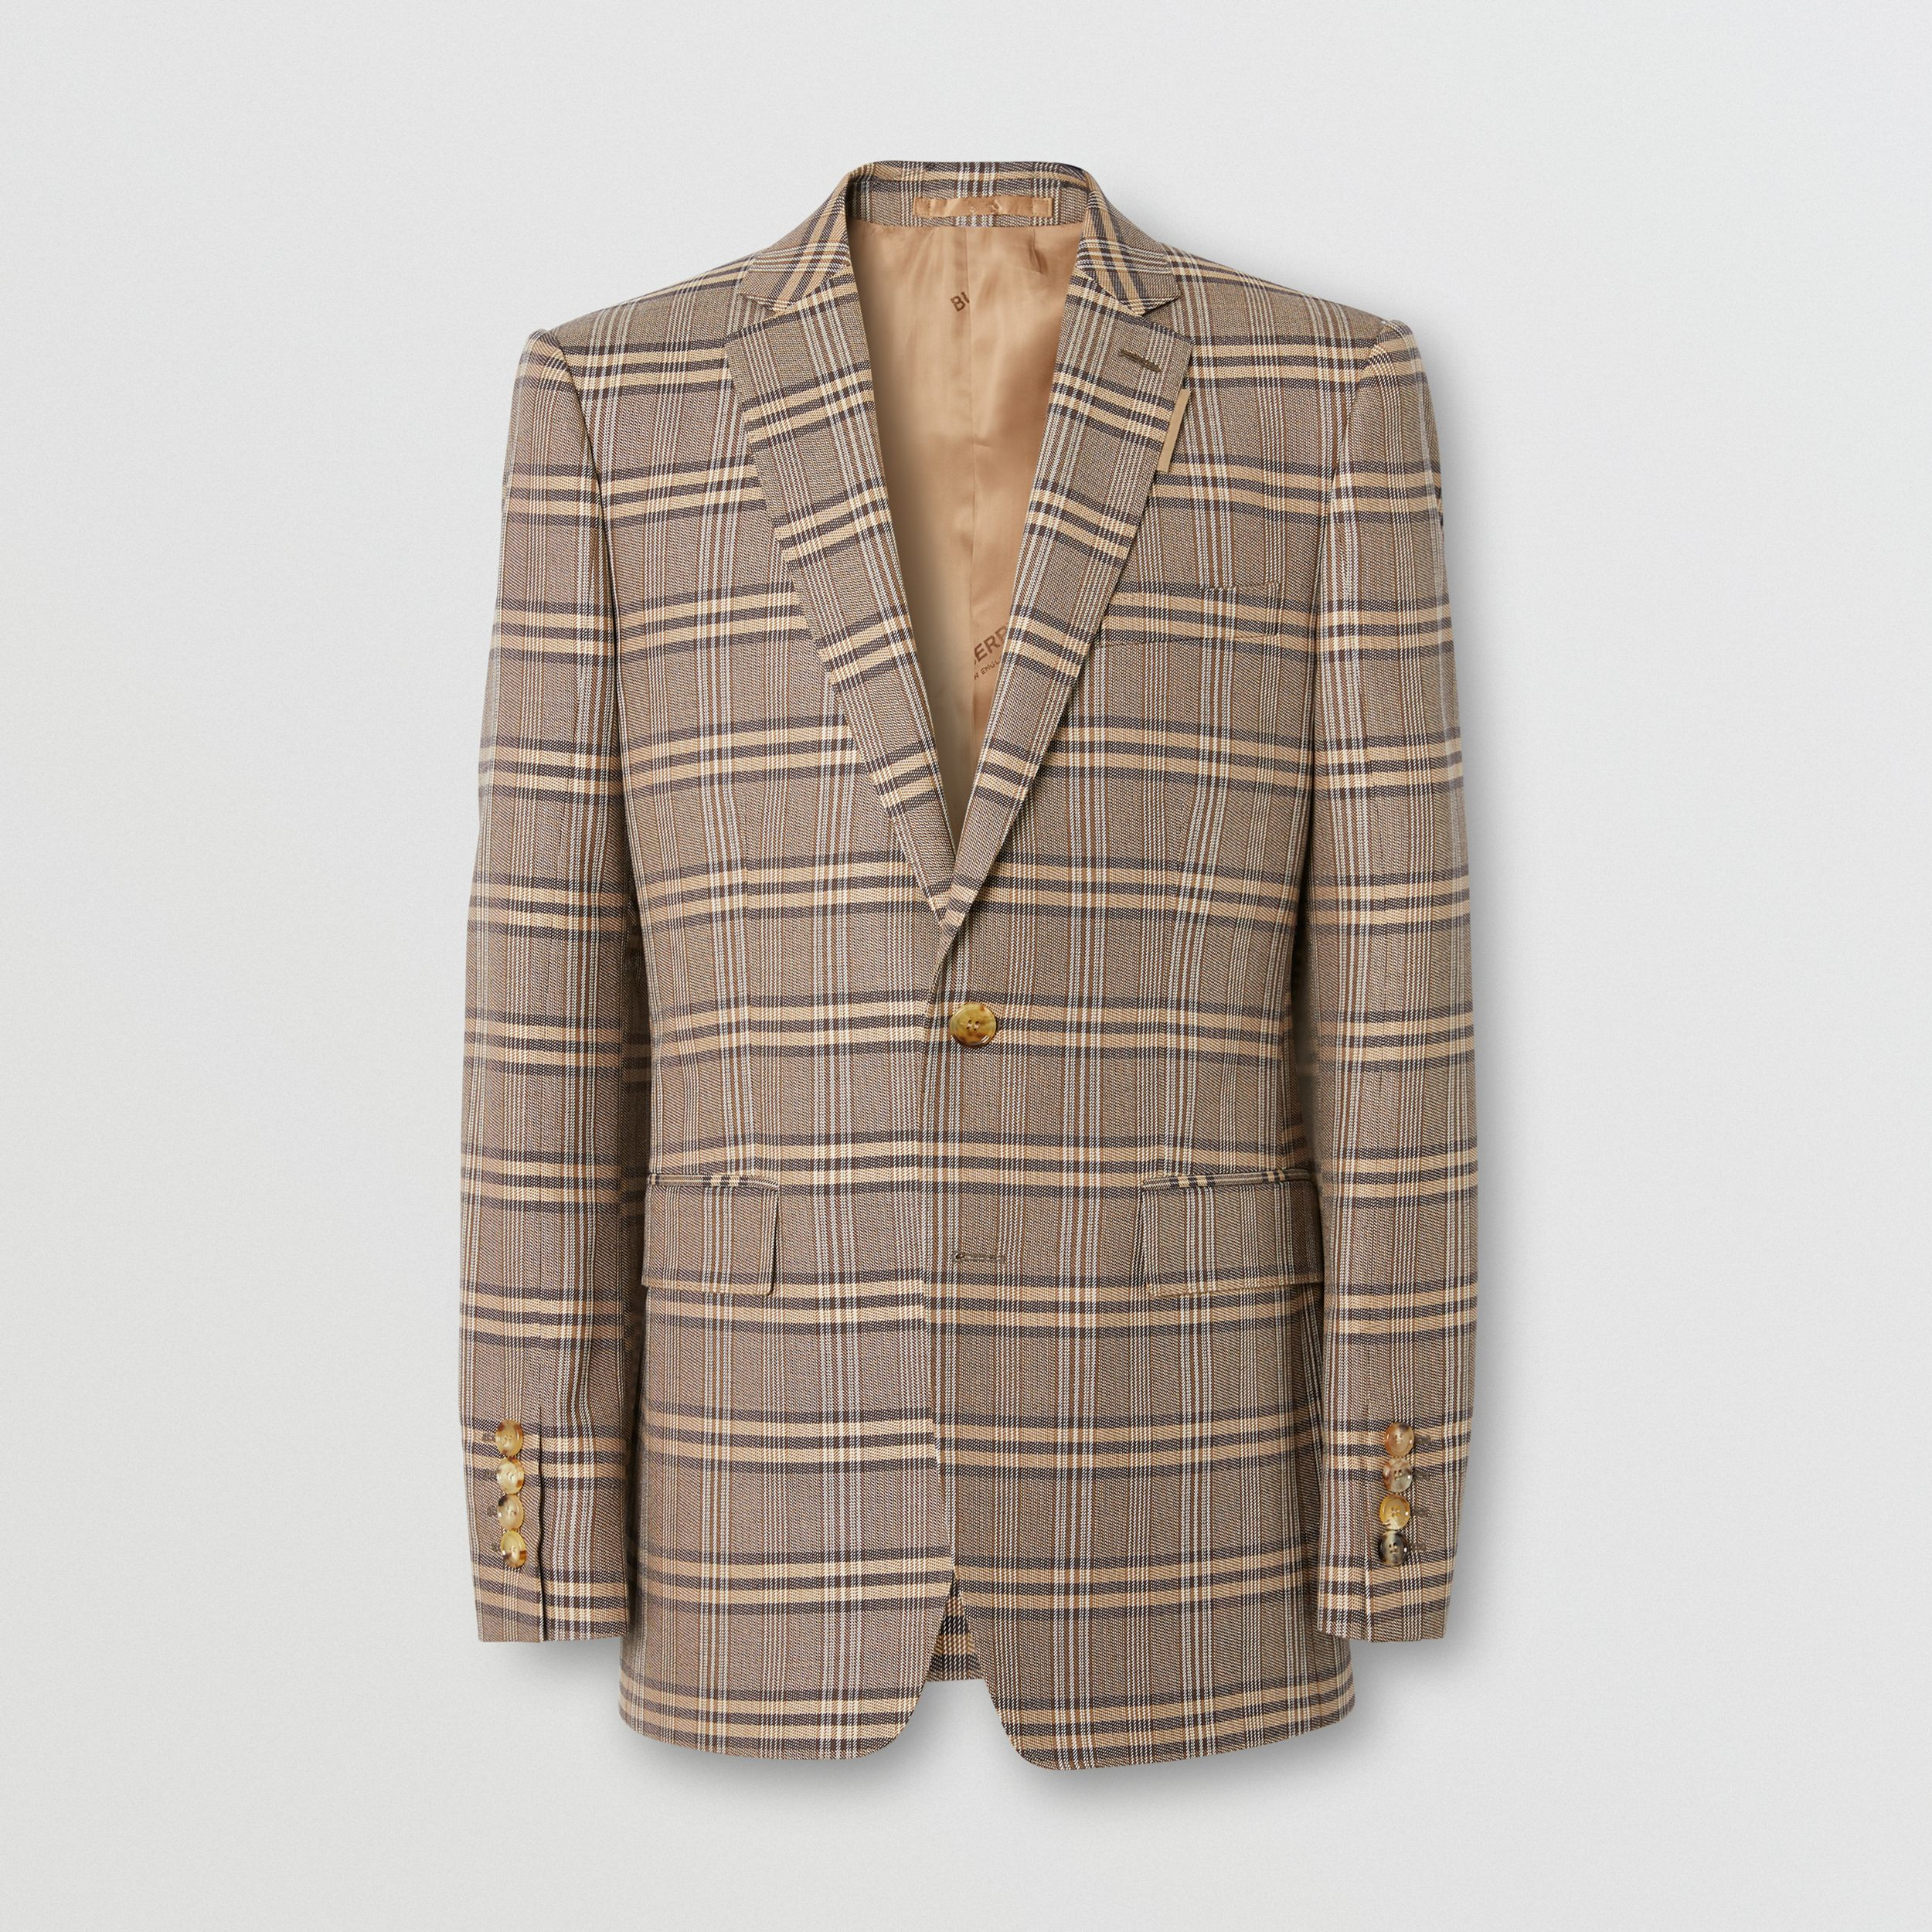 Prince of Wales Check Wool Silk Tailored Jacket in Dusty Caramel | Burberry - 1